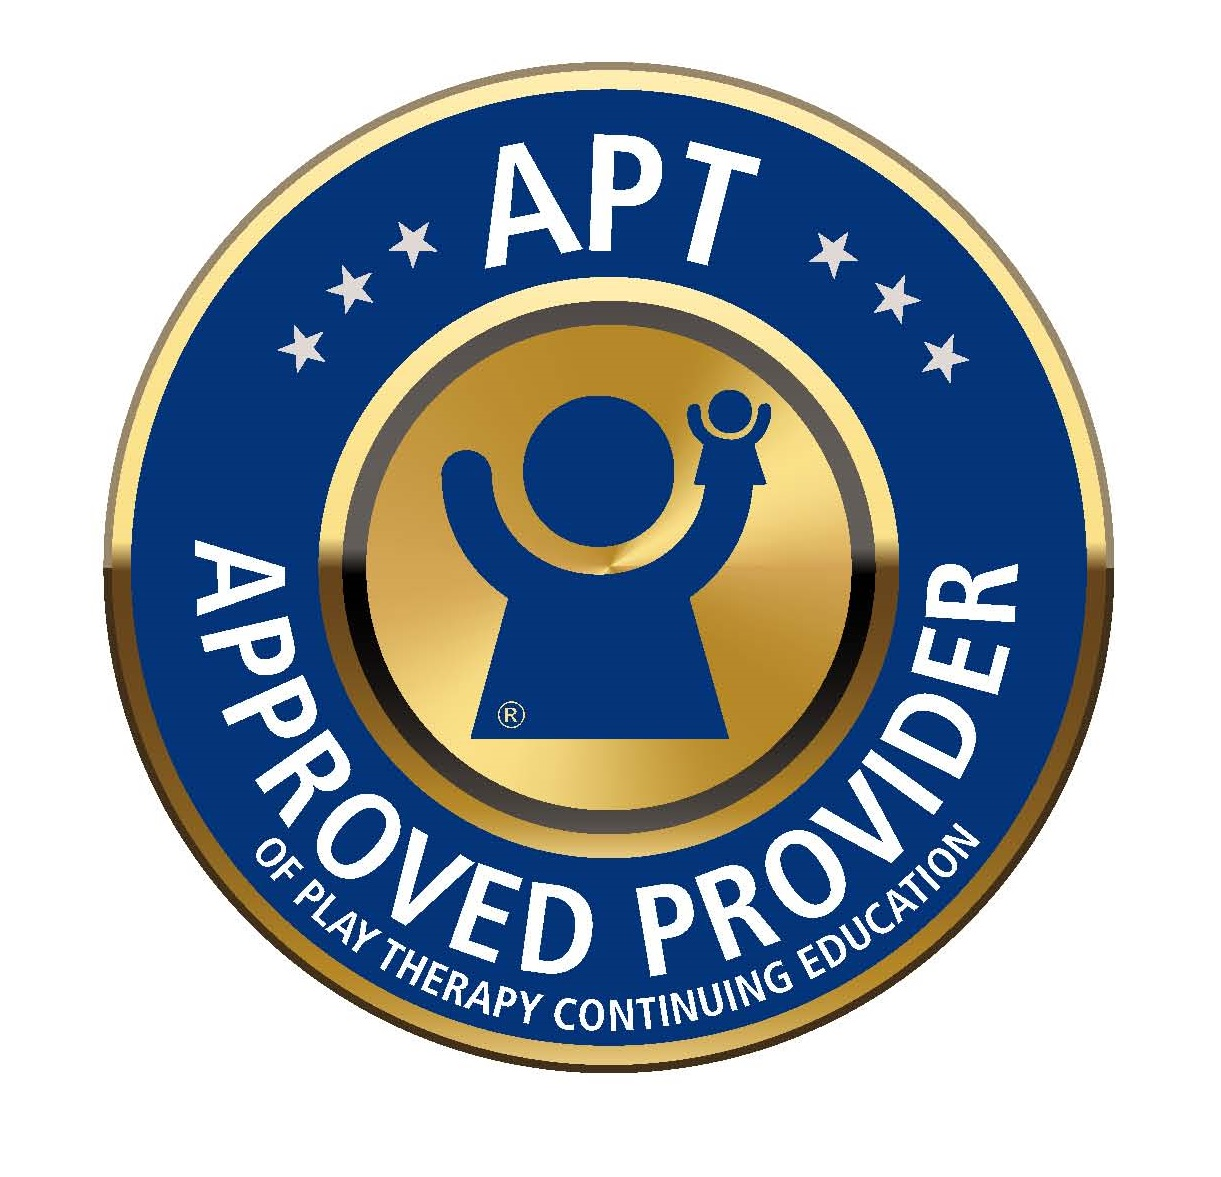 APT Approved Provider (07-199) -